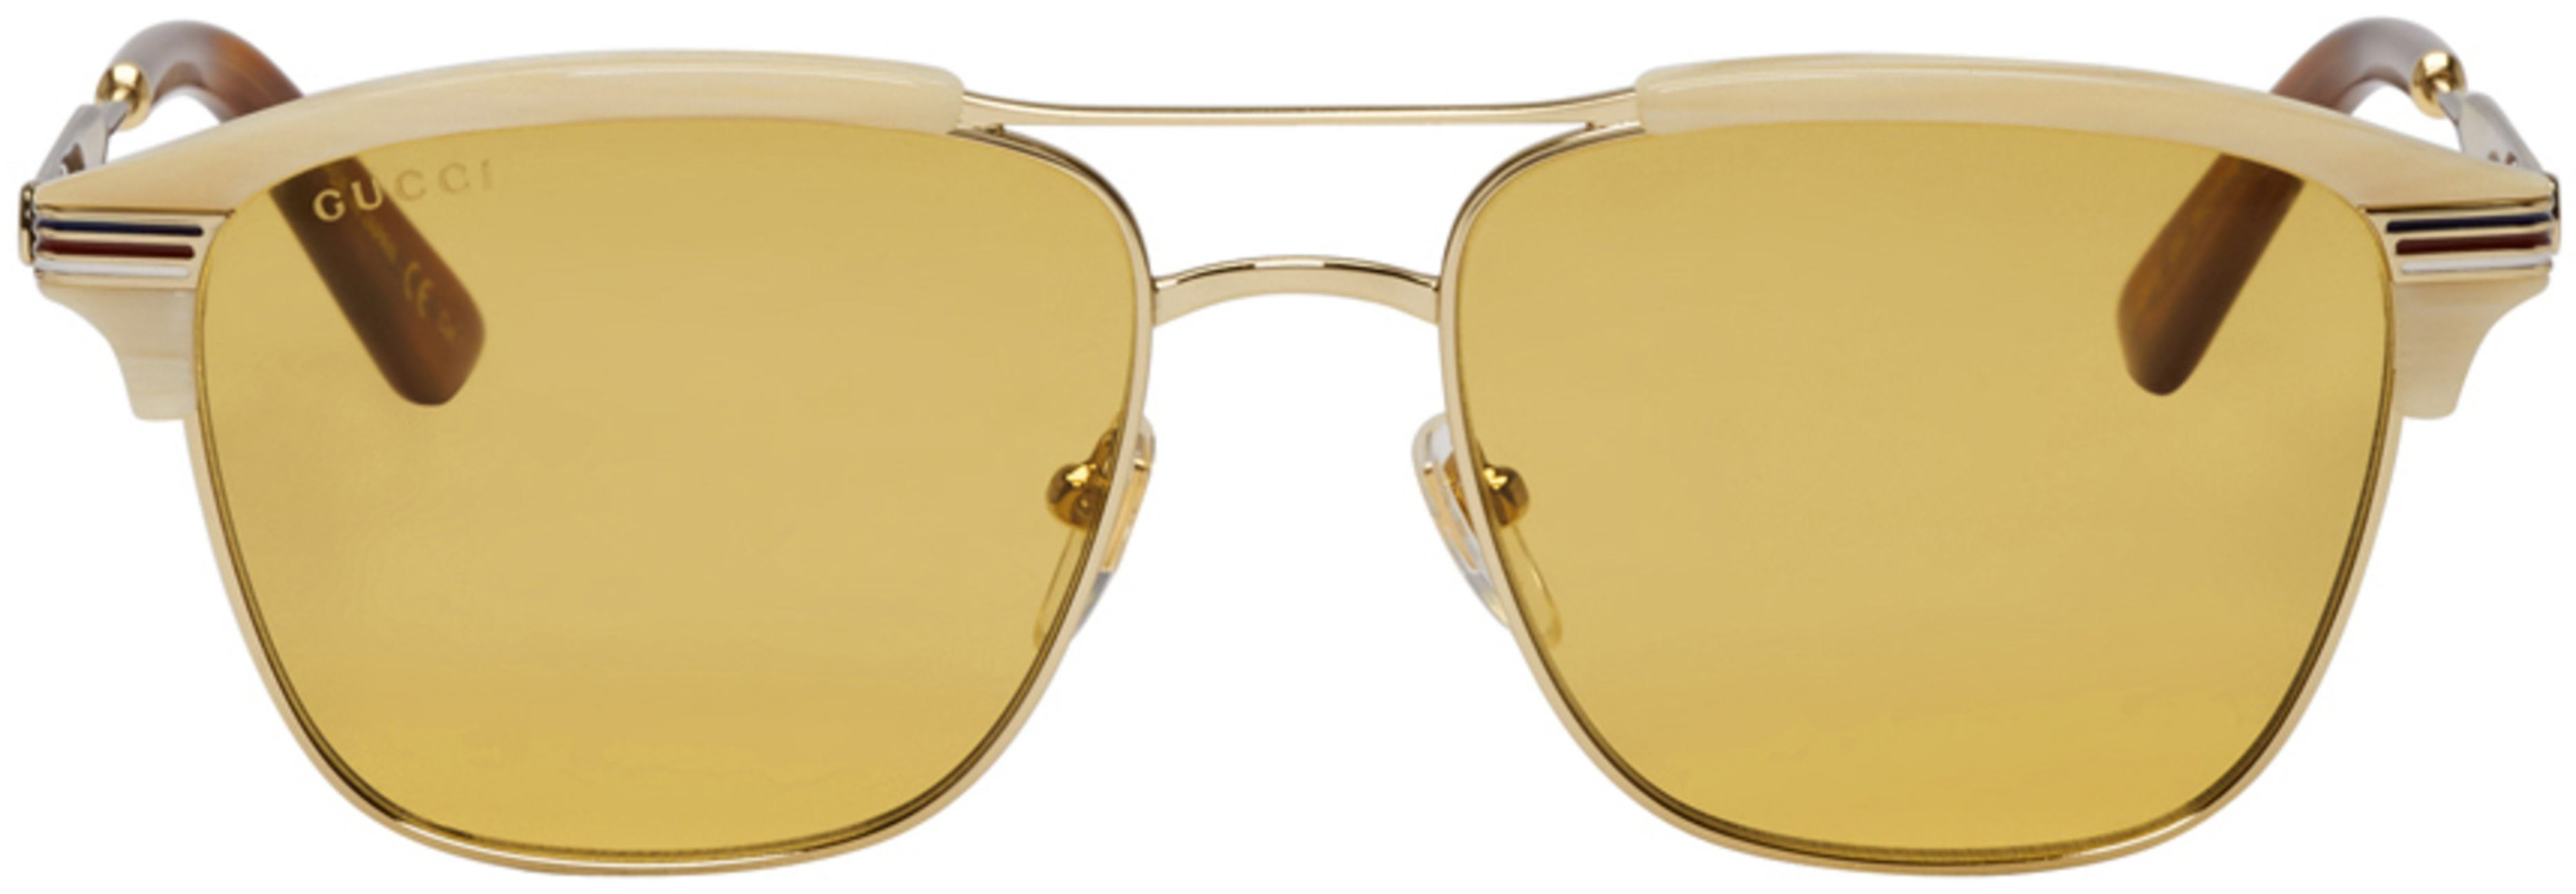 Gucci Sunglasses from ssense.com